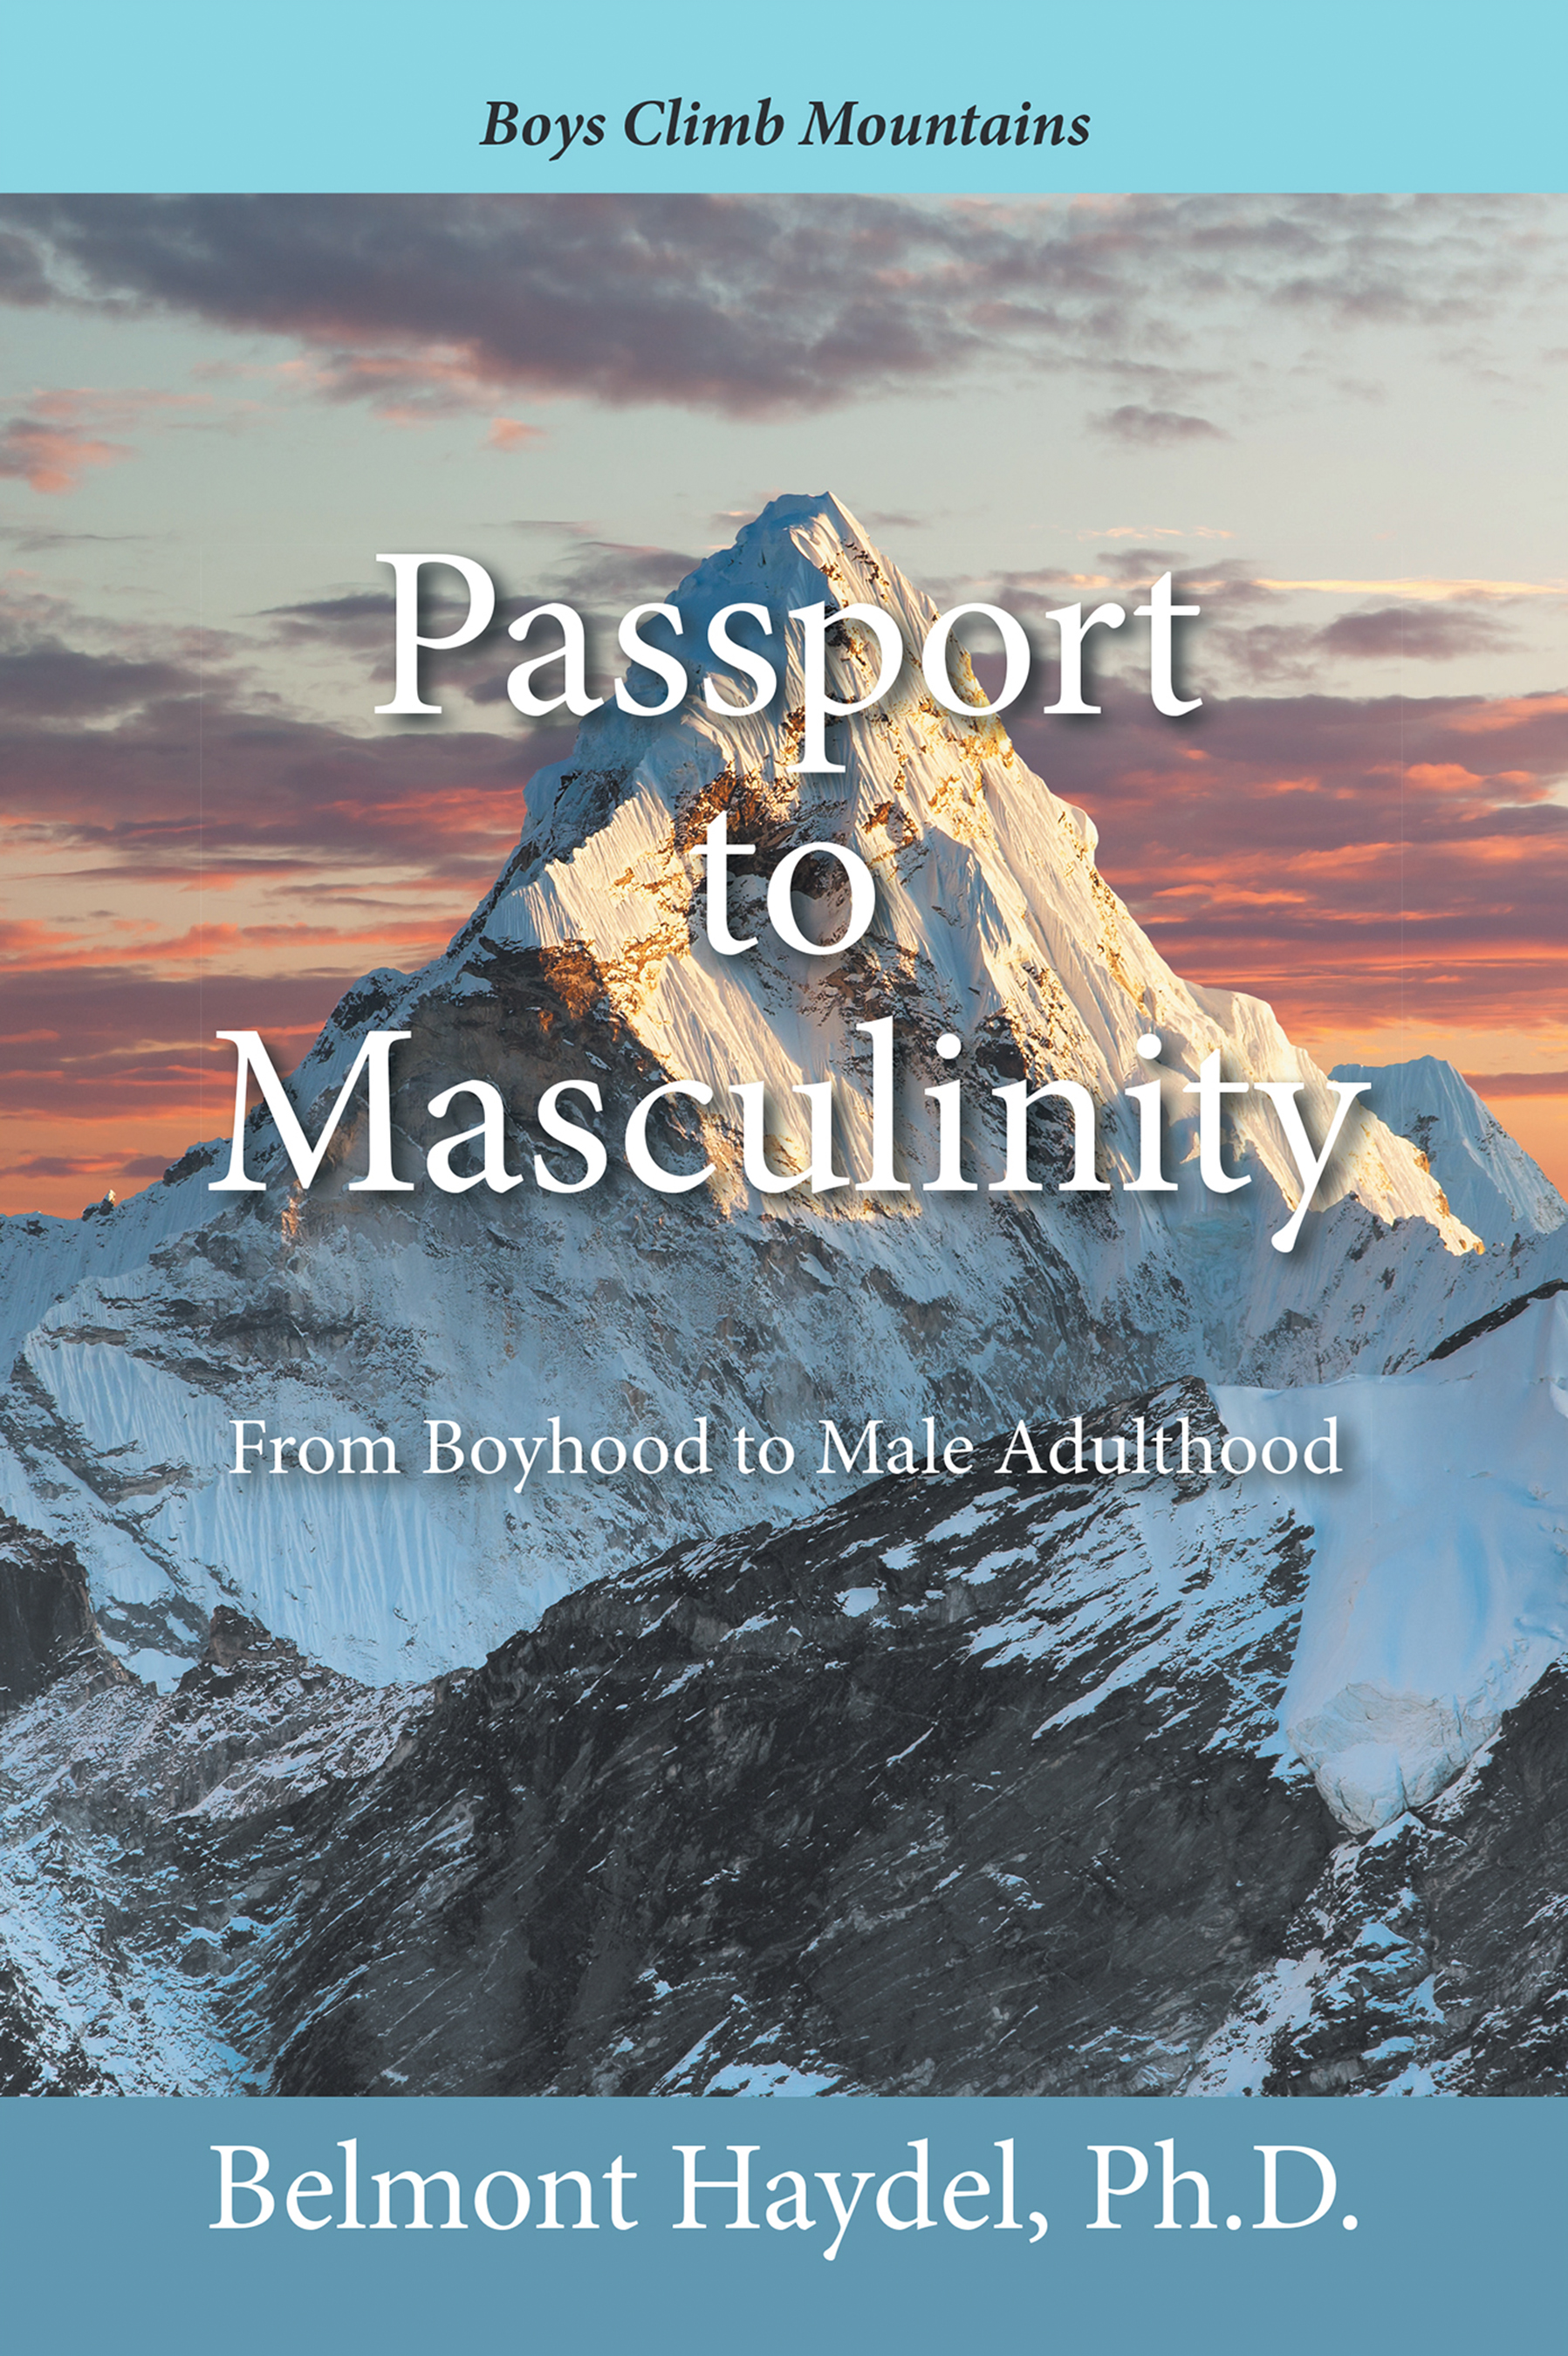 Passport to Masculinity